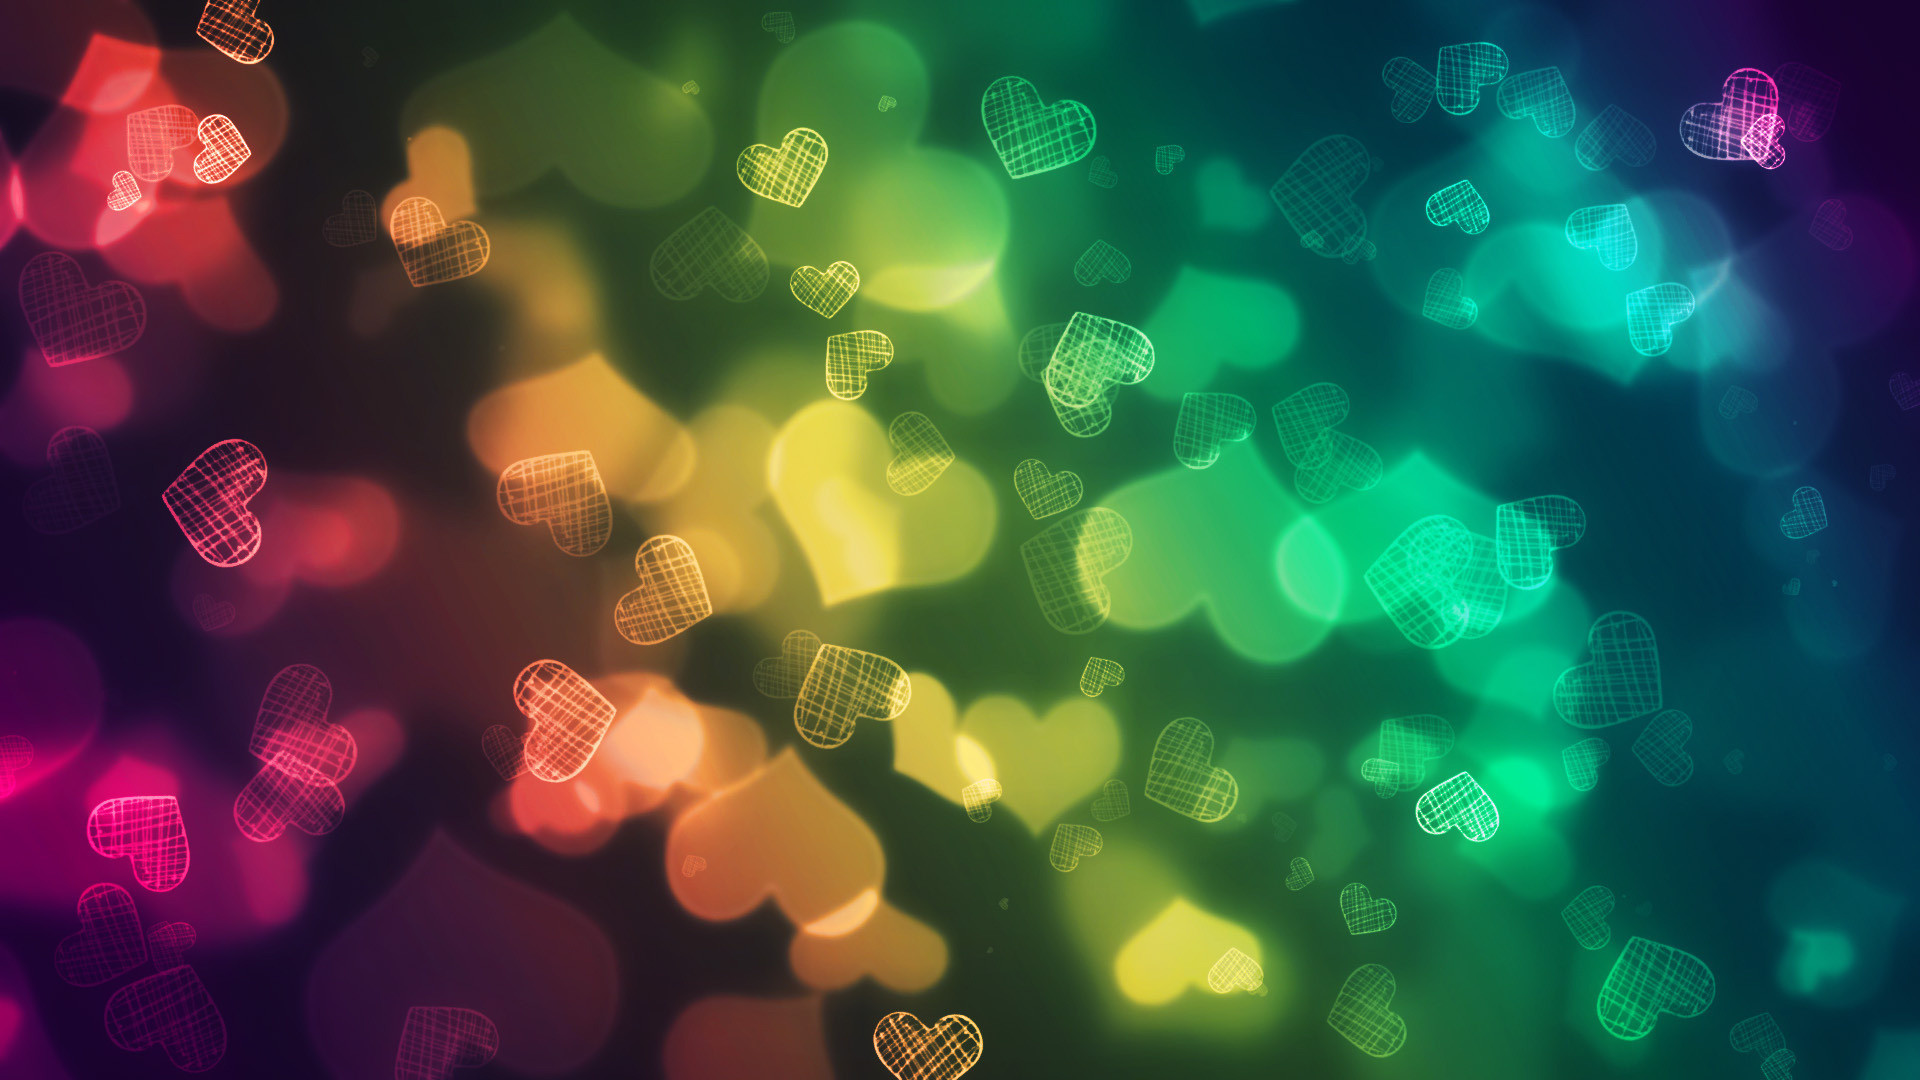 Cool Heart Backgrounds 59 Pictures